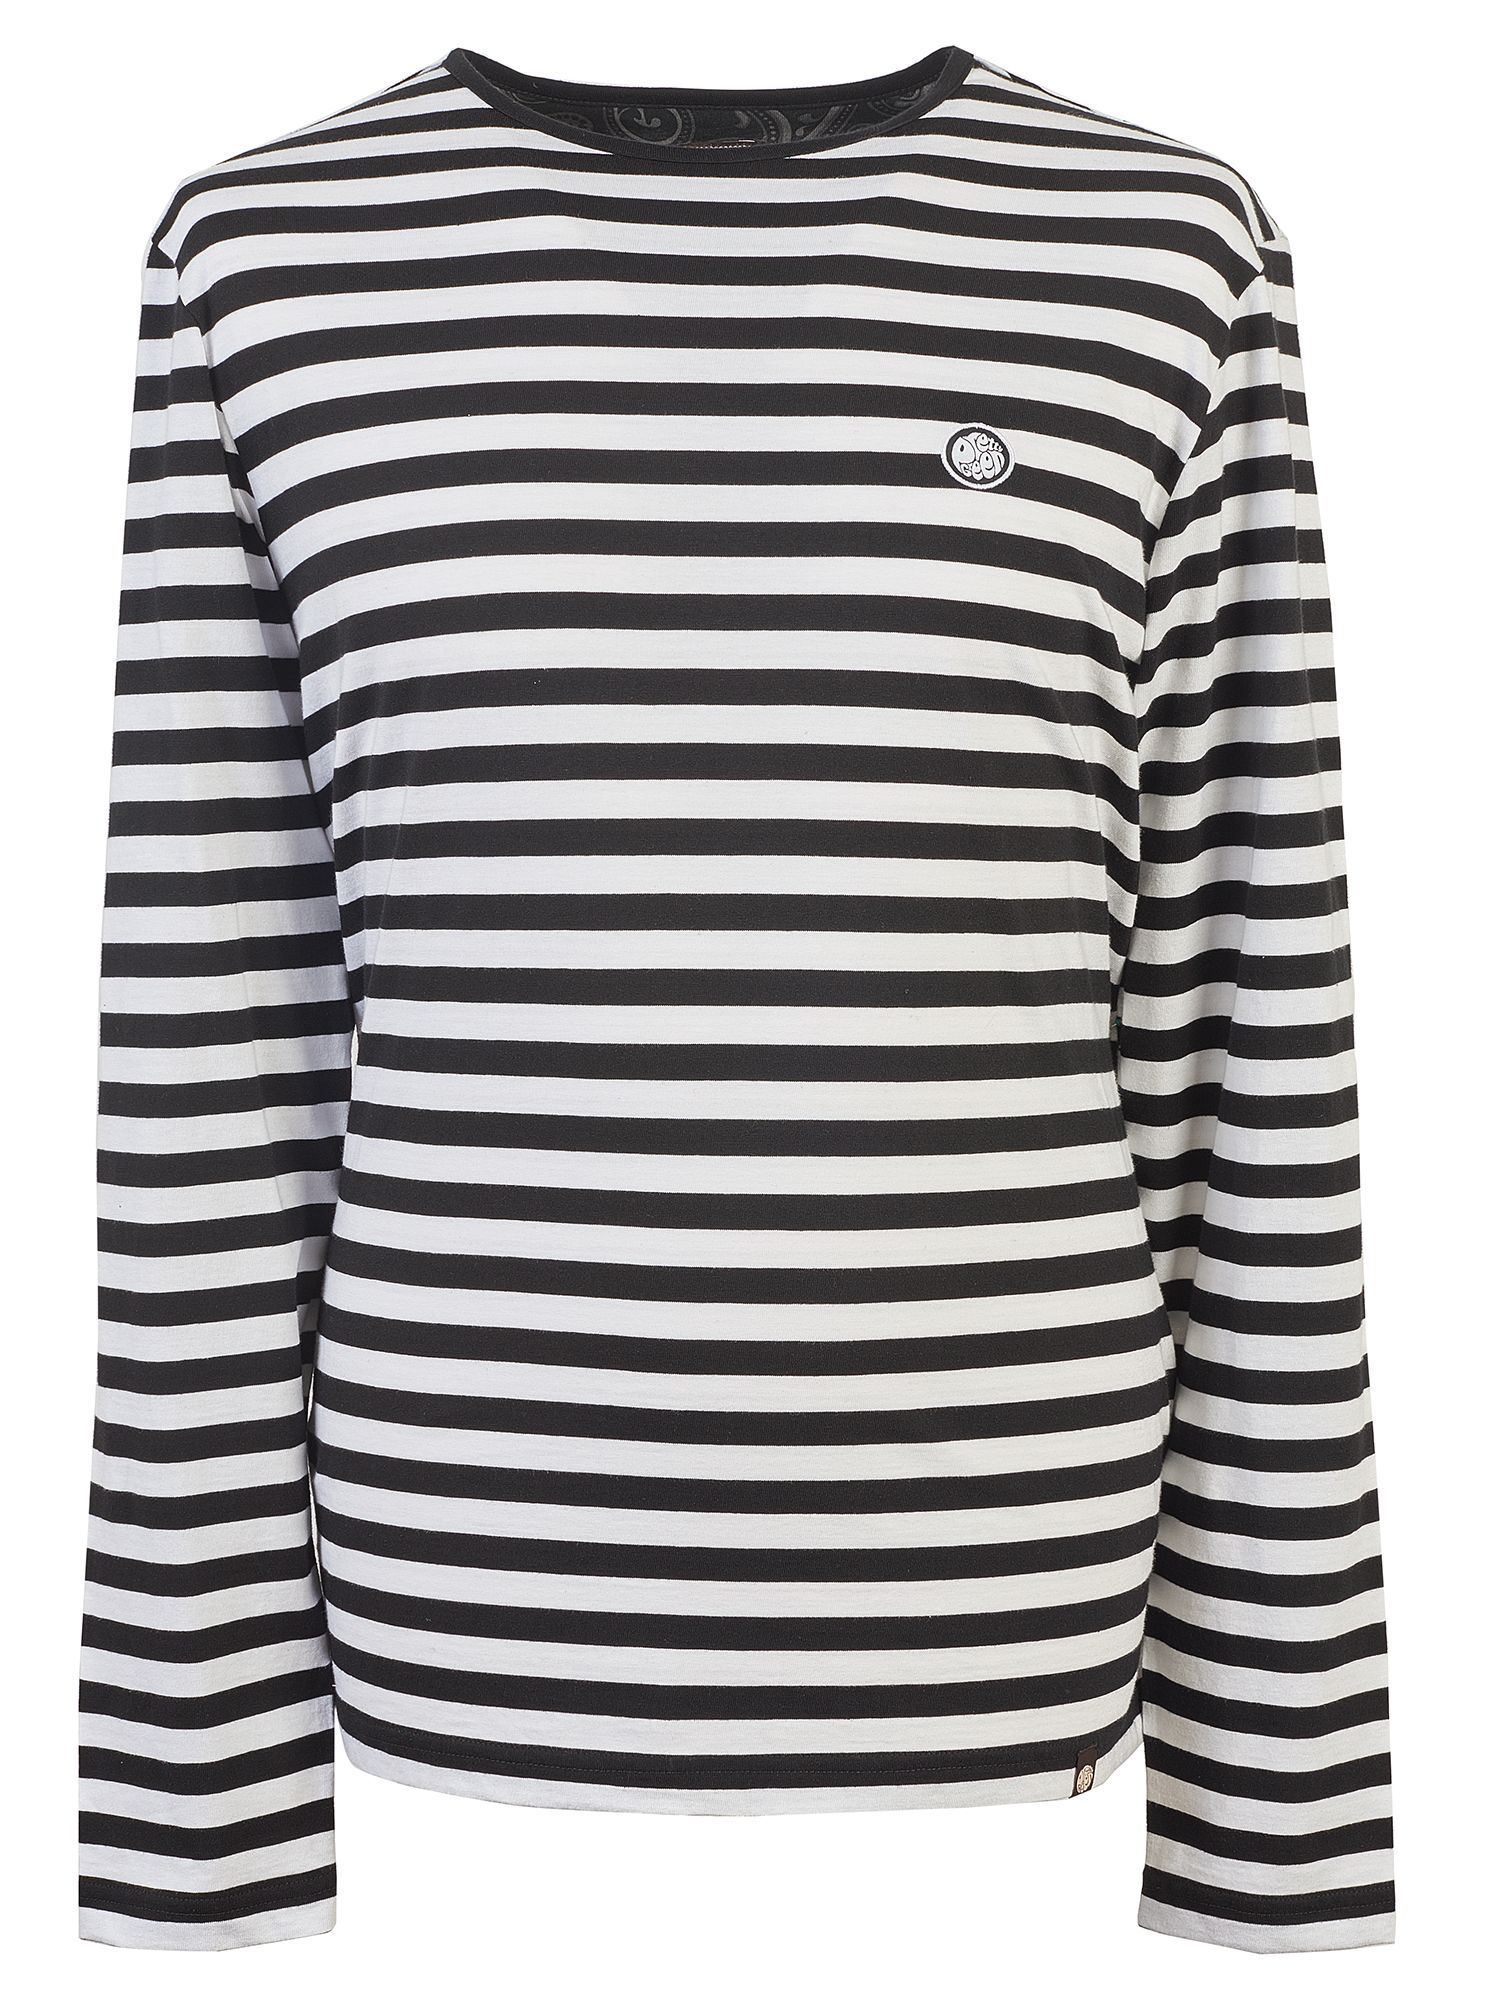 Men's Pretty Green Long Sleeve Striped T-Shirt, Black